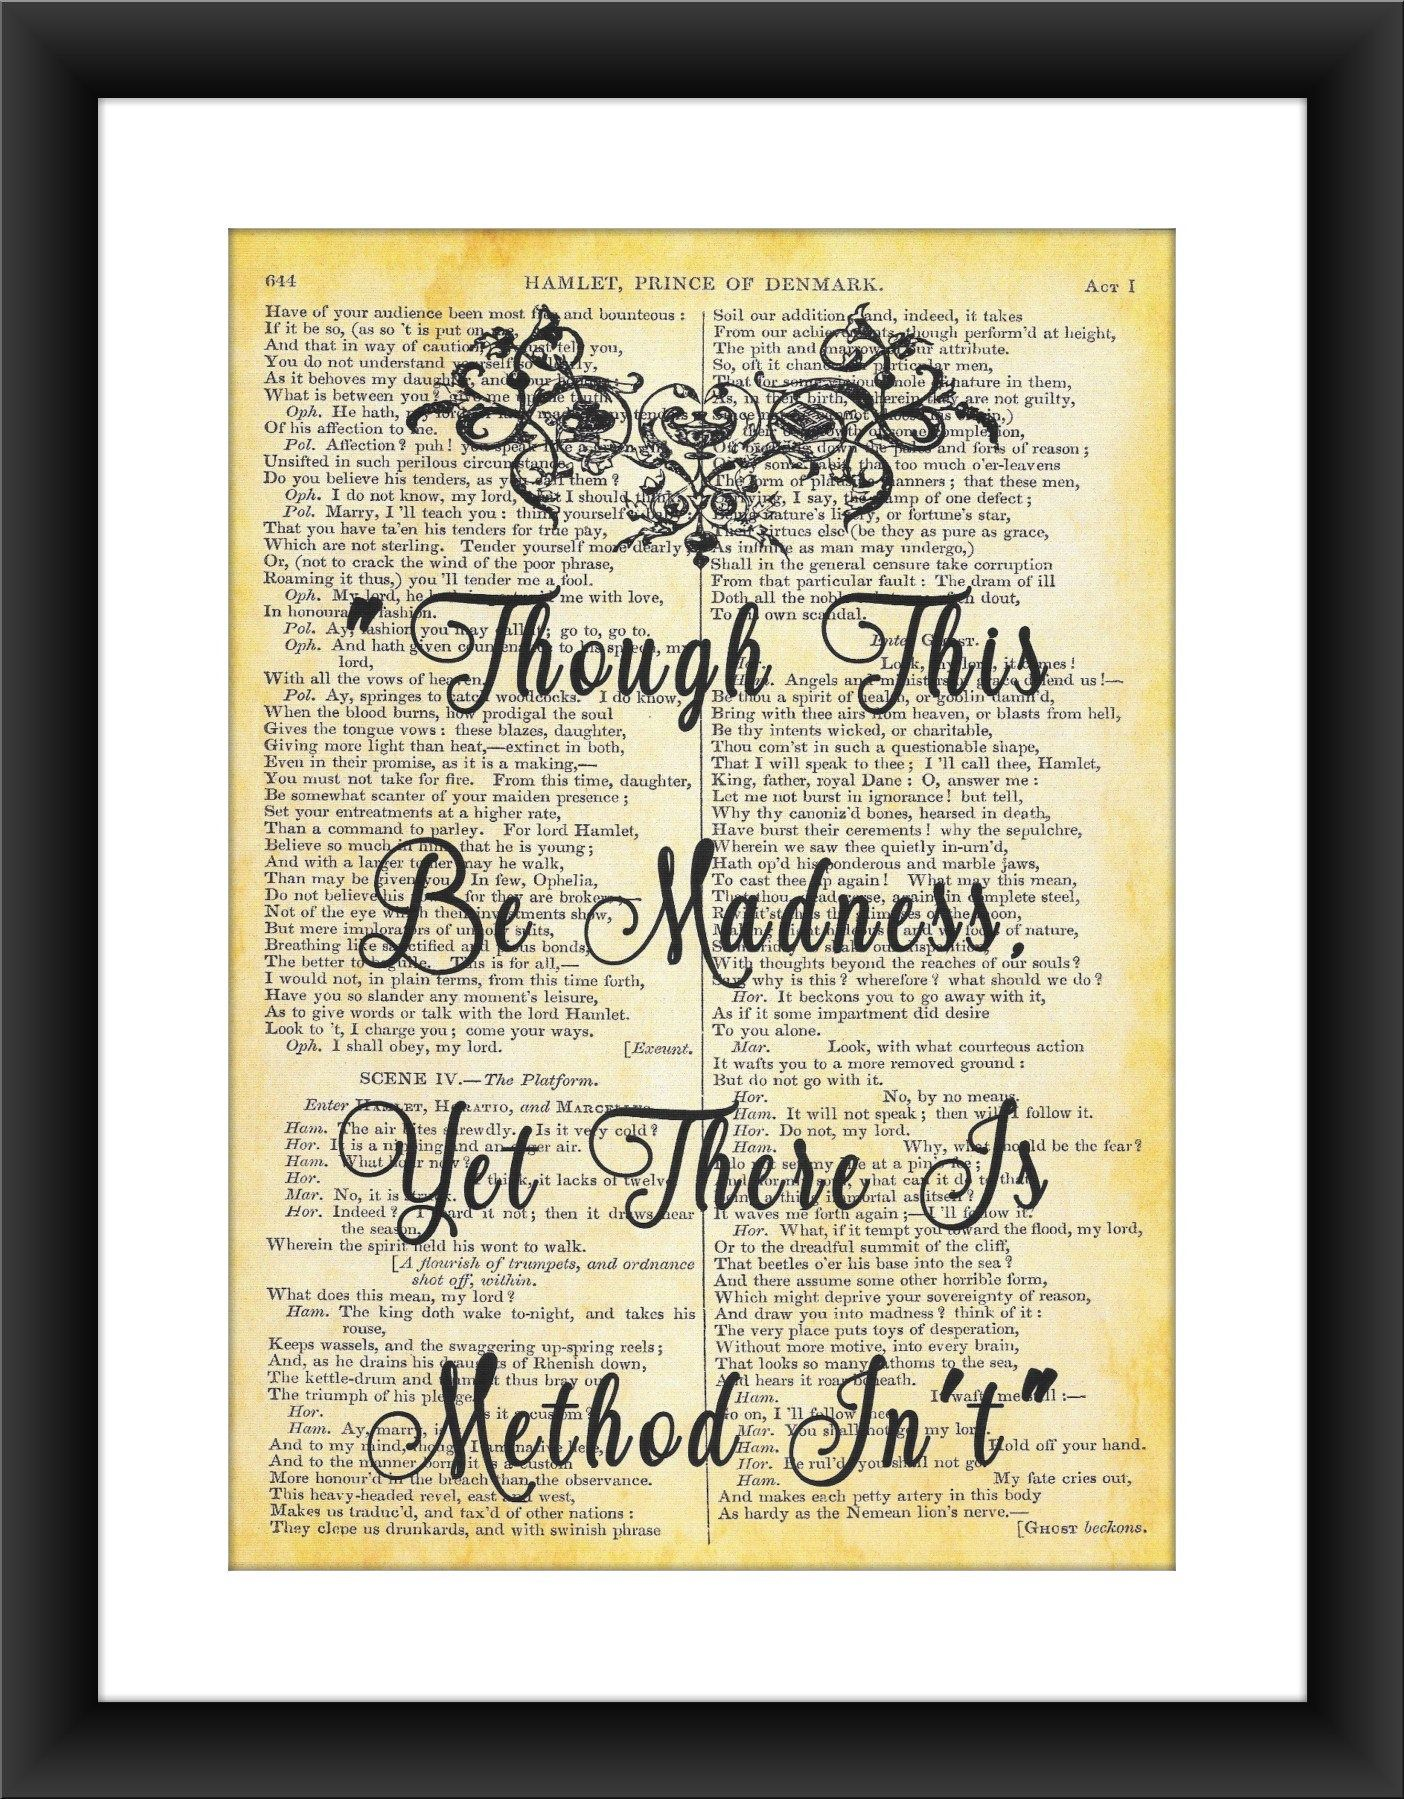 William Shakespeare Quote From The Play Hamlet On ...